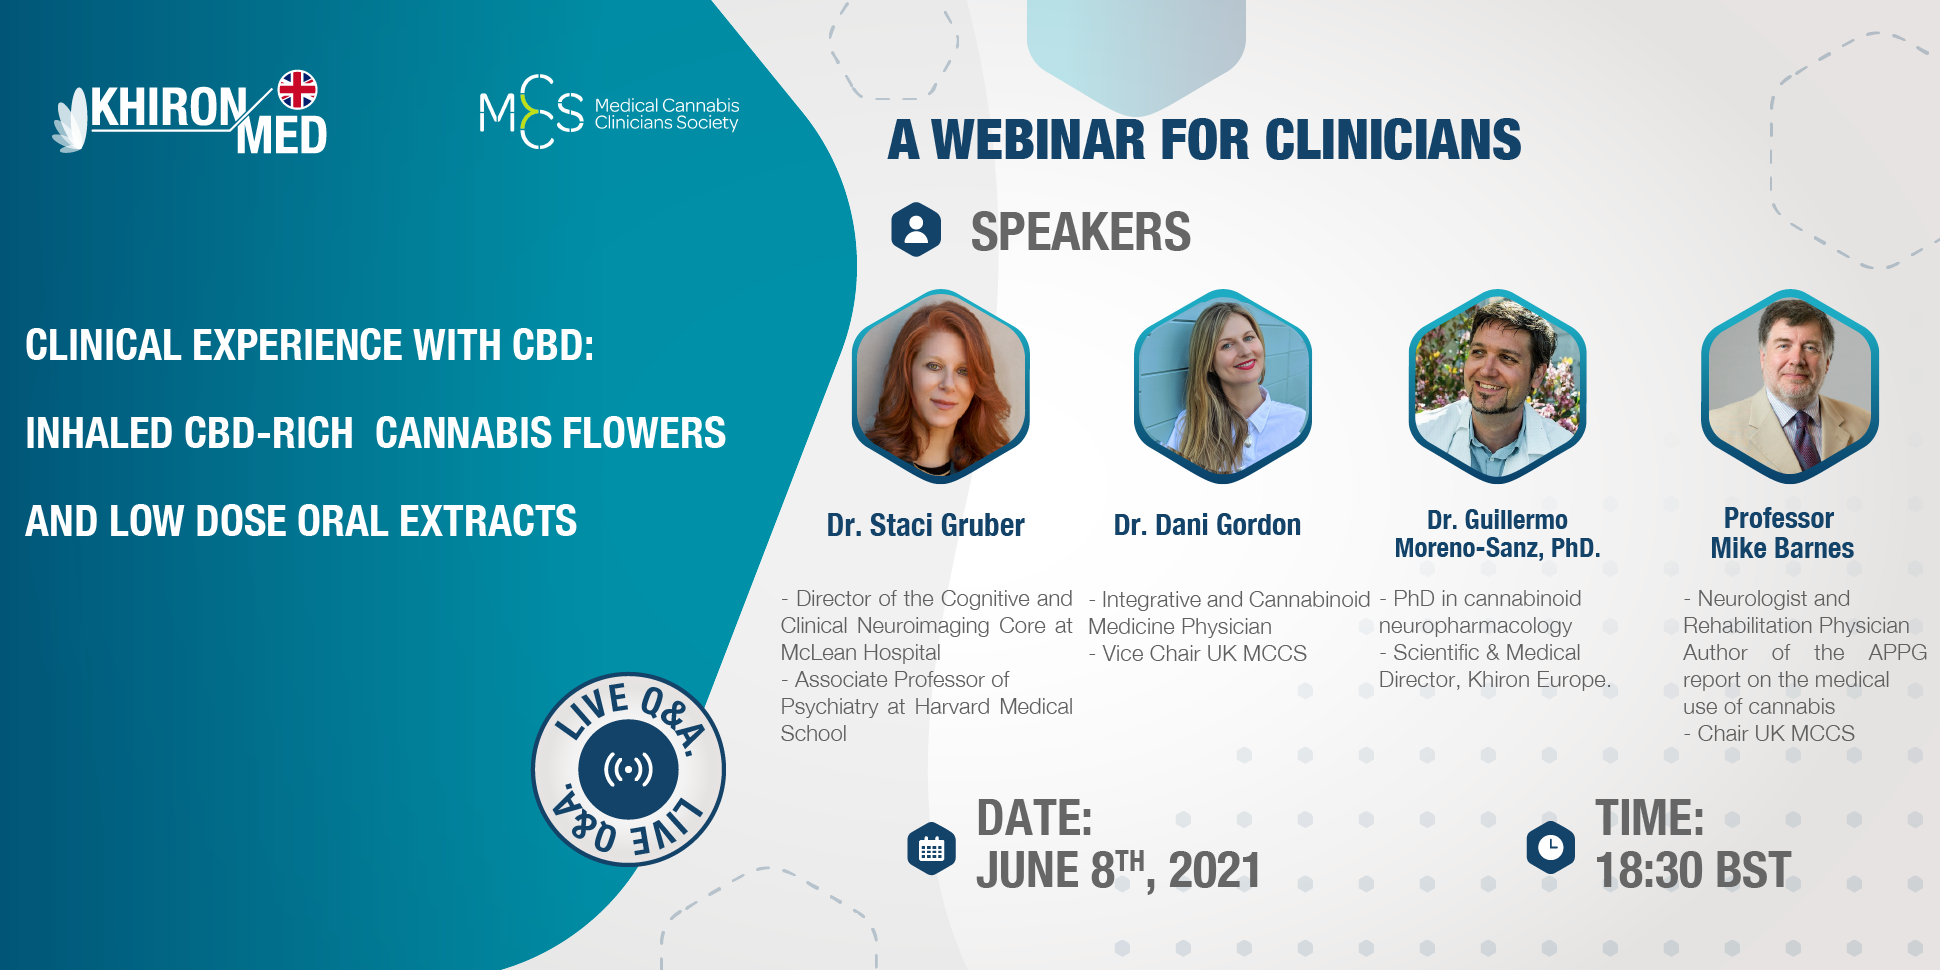 Clinical experience with CBD: dried flower and oral extracts